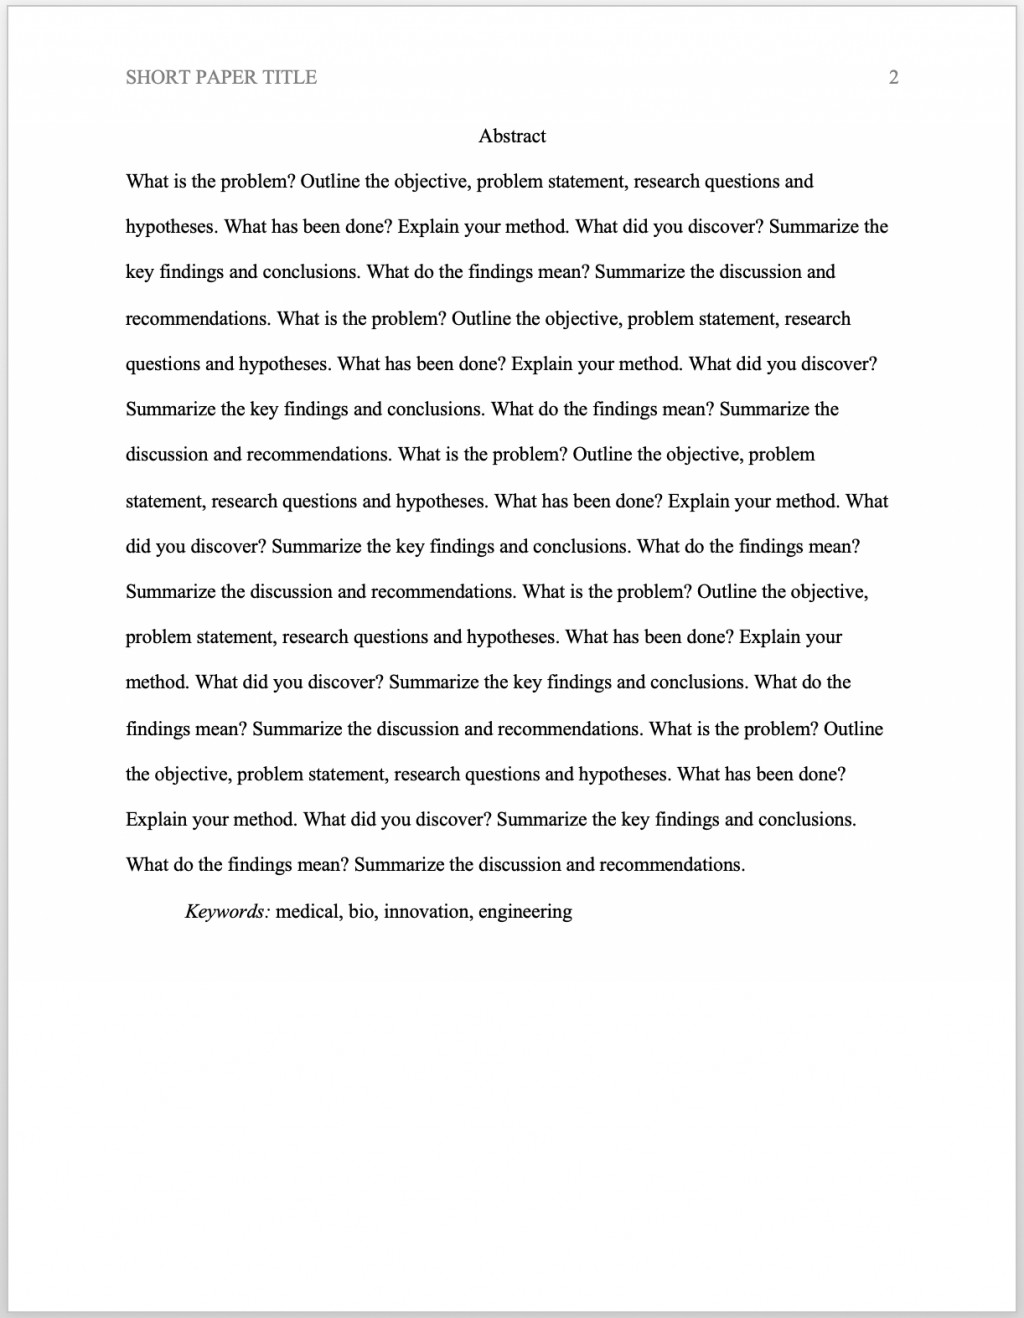 007 Citation Rules For Researchs Apa Abstract Awful Research Papers Large